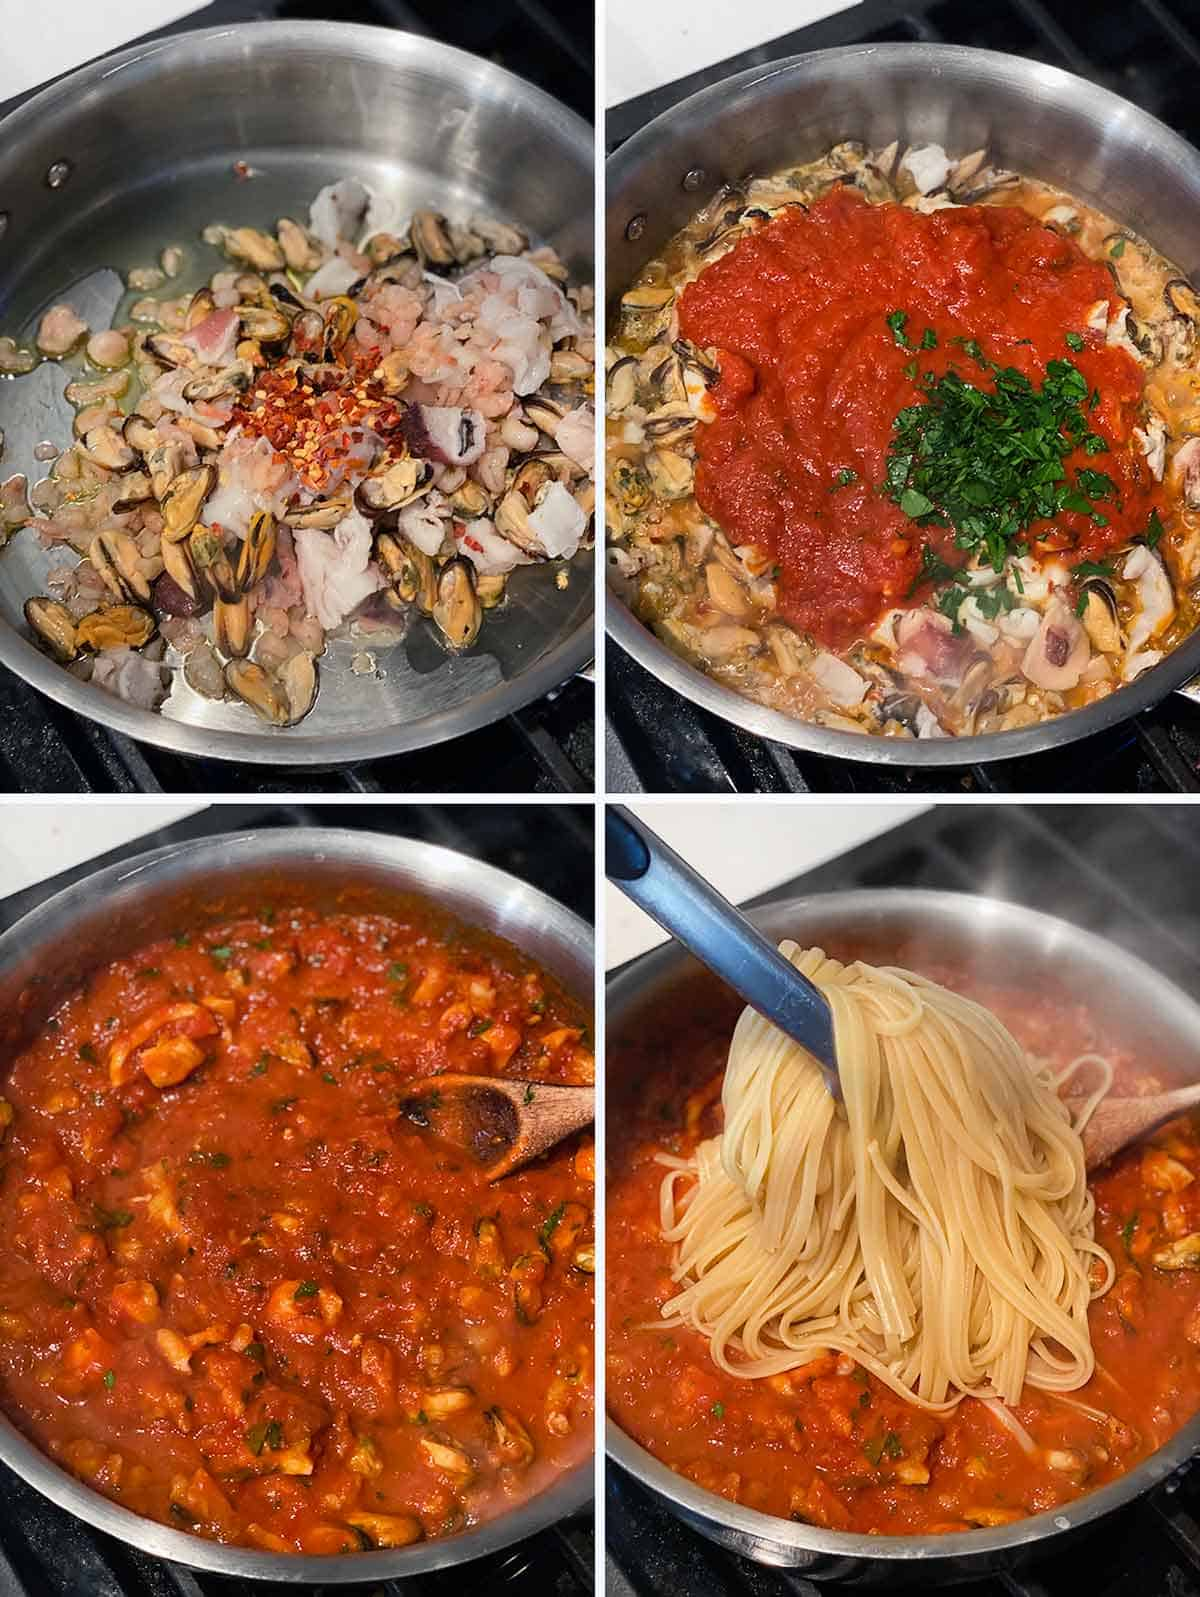 Process collage showing how to make seafood linguine with fra diavolo sauce in a skillet.